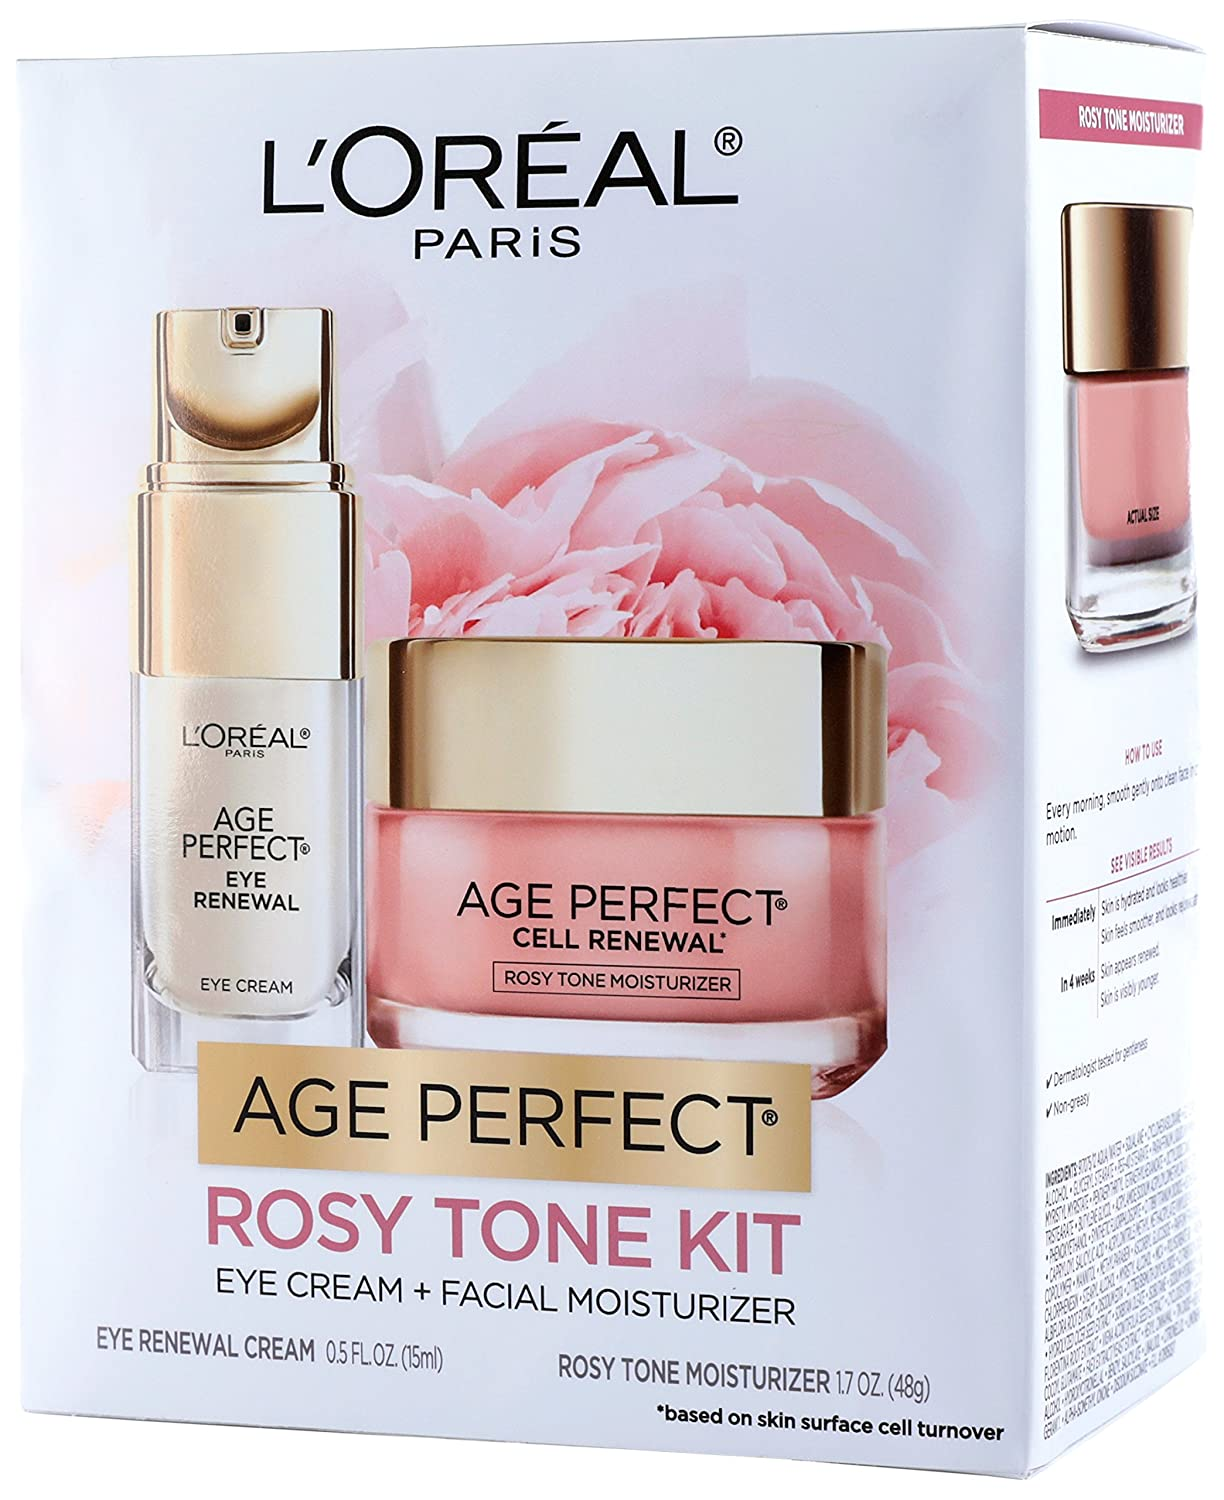 L'Oreal Paris Skin Care Giftable Max 57% OFF Kit Perfect Tone Age Overseas parallel import regular item with Rosy